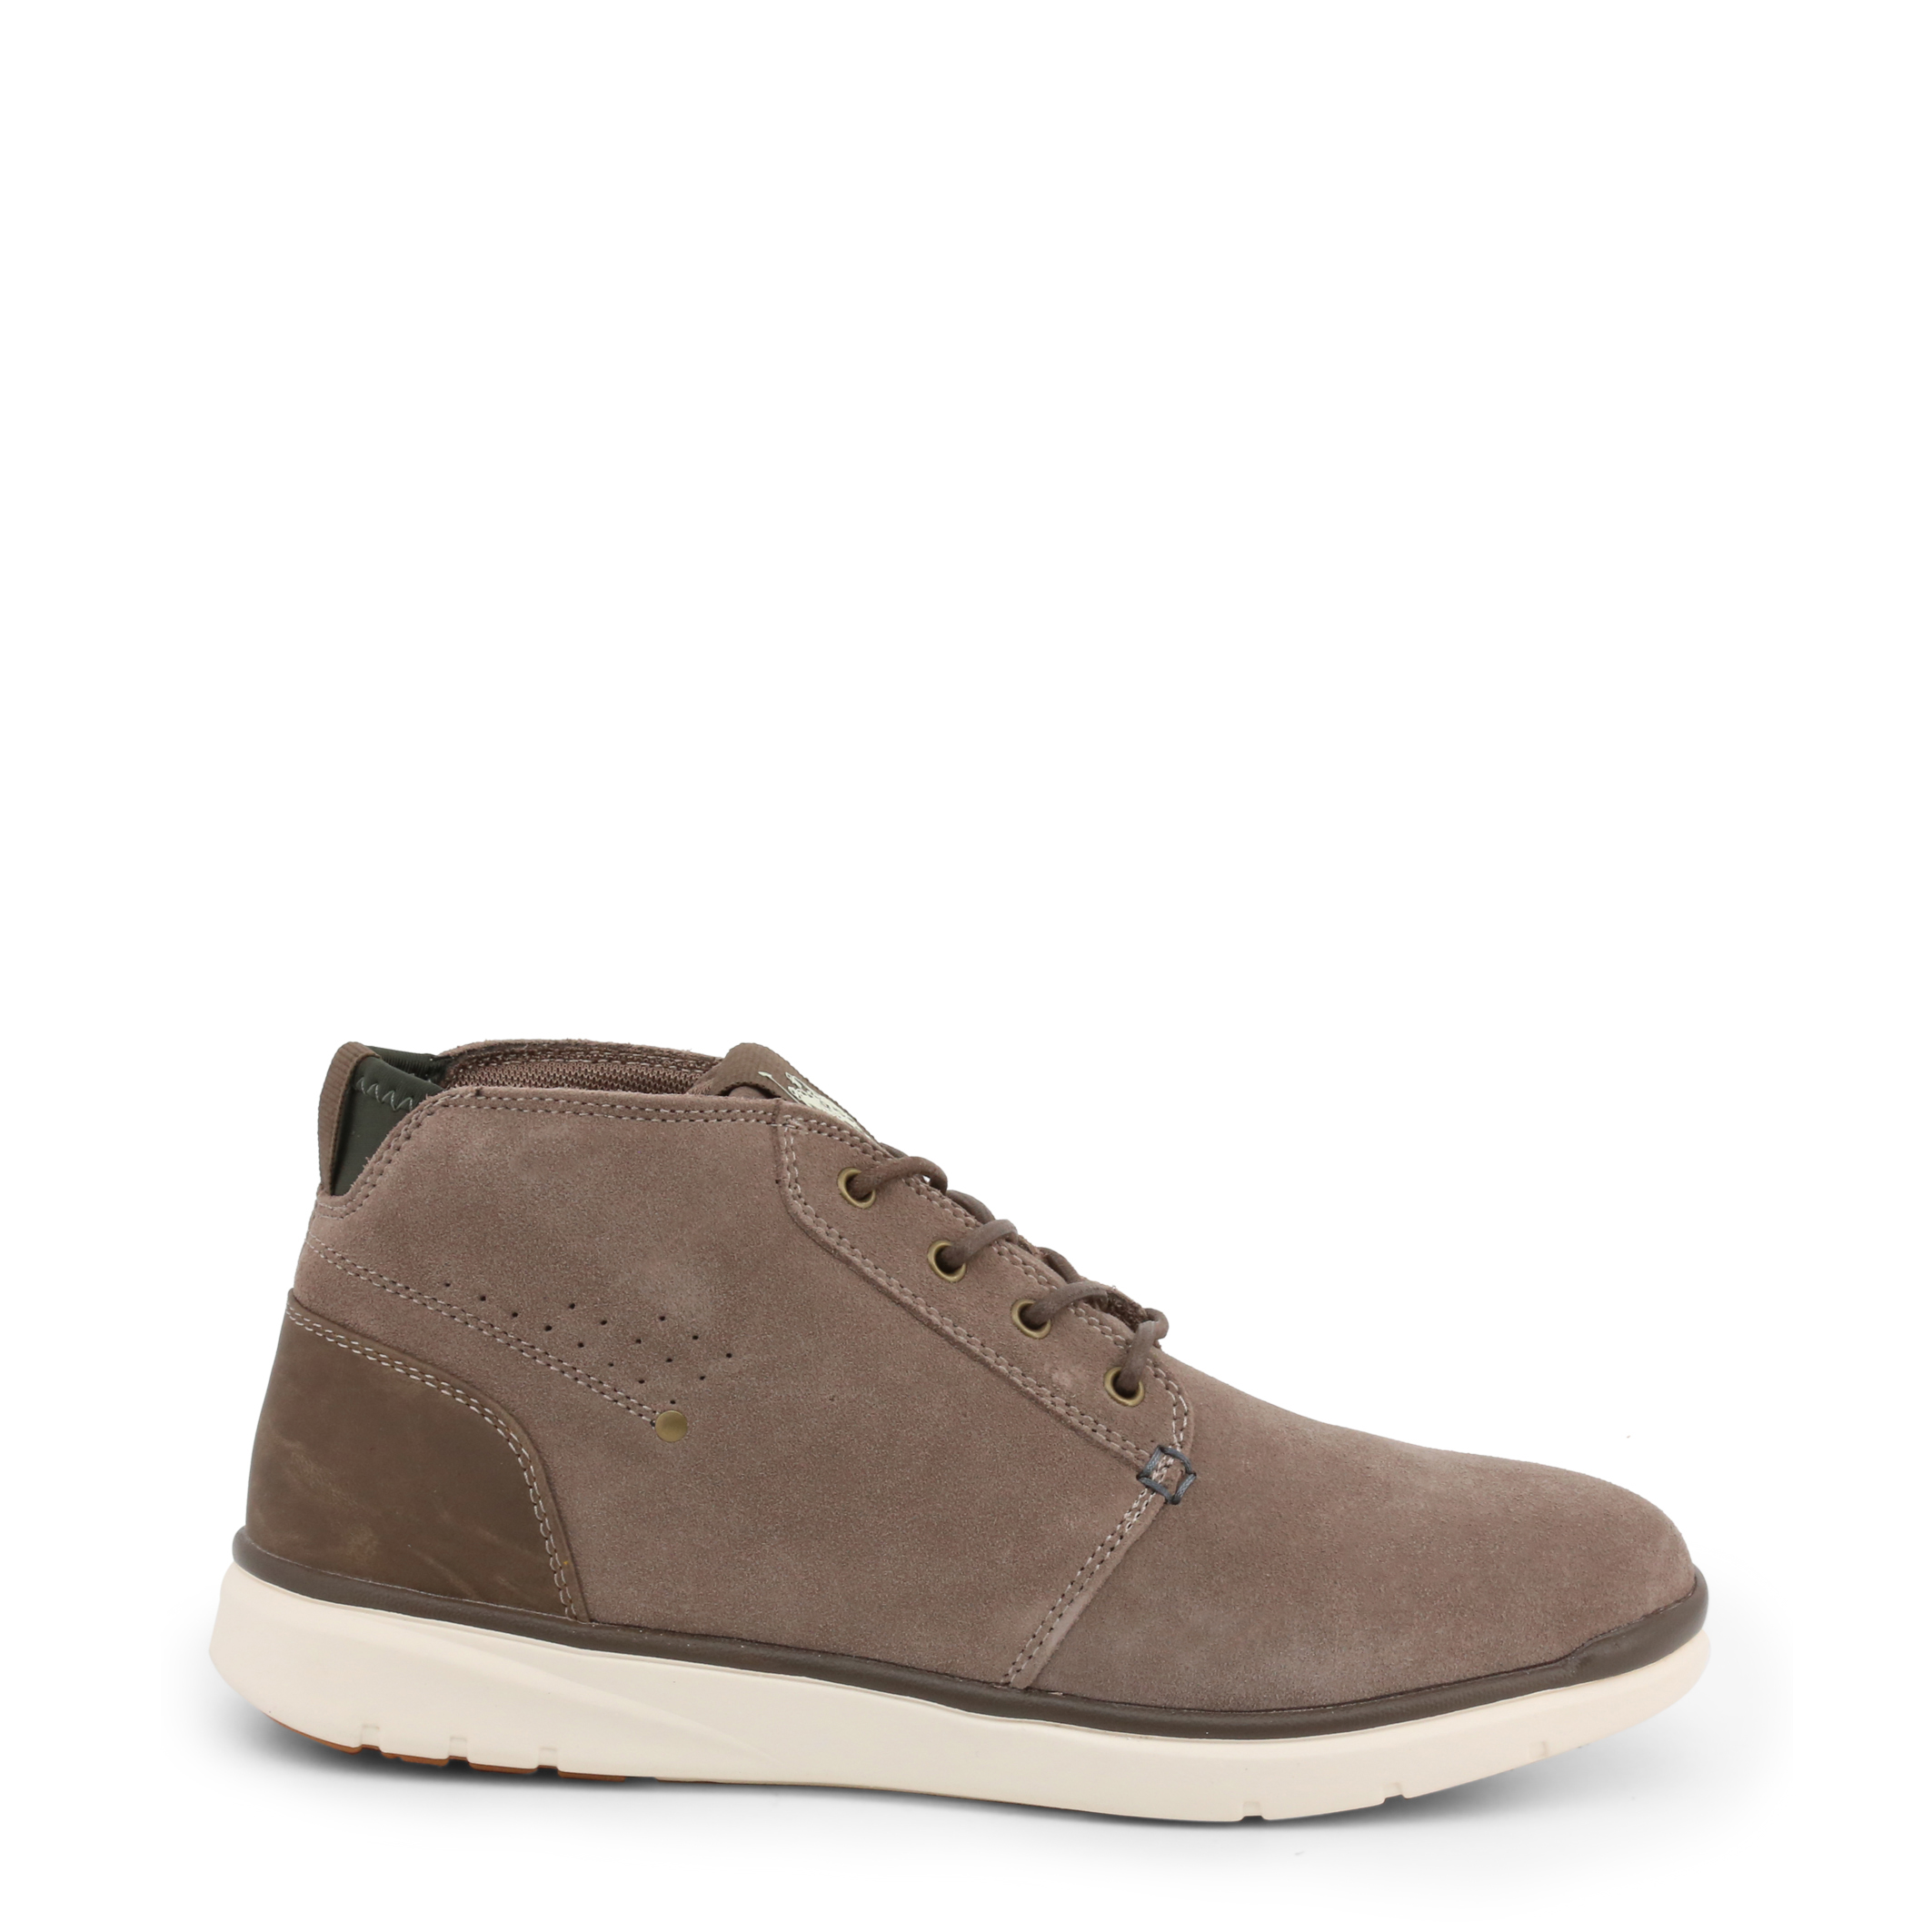 Chaussures de ville  U.S. Polo Assn. YGOR4128W9_SY1_MUD brown